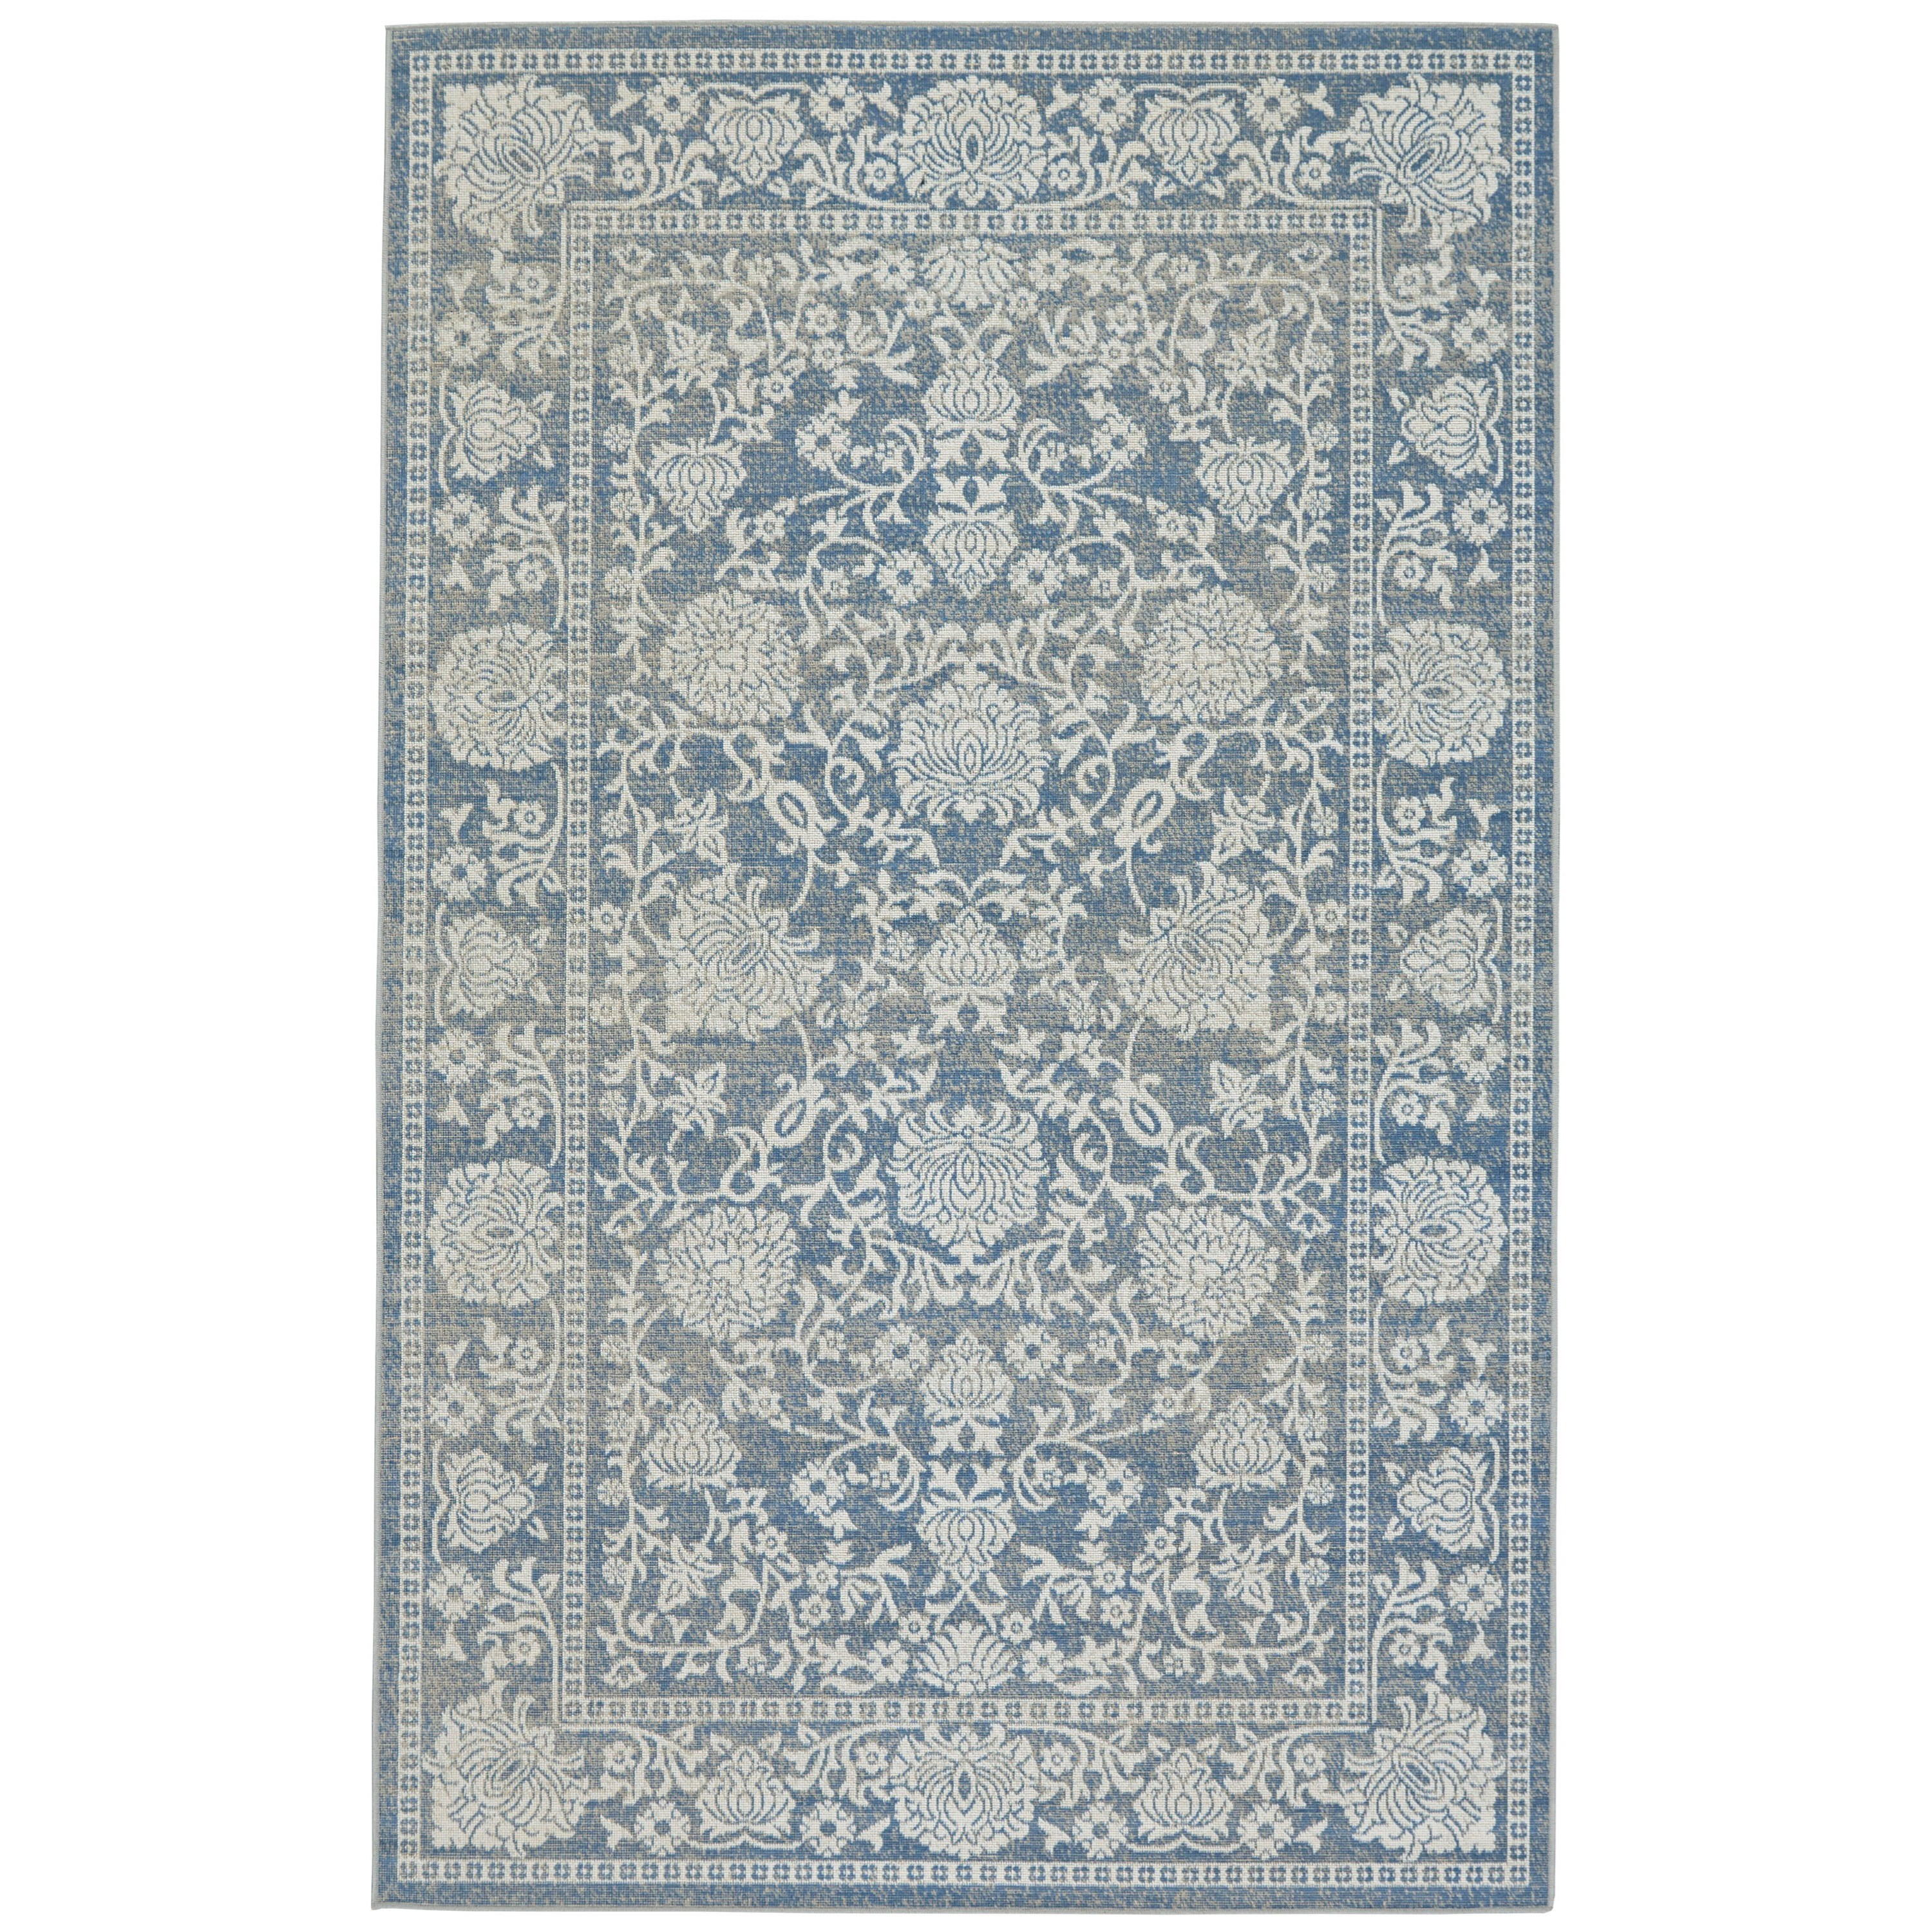 Thatcher Denim 5' x 8' Area Rug by Feizy Rugs at Sprintz Furniture